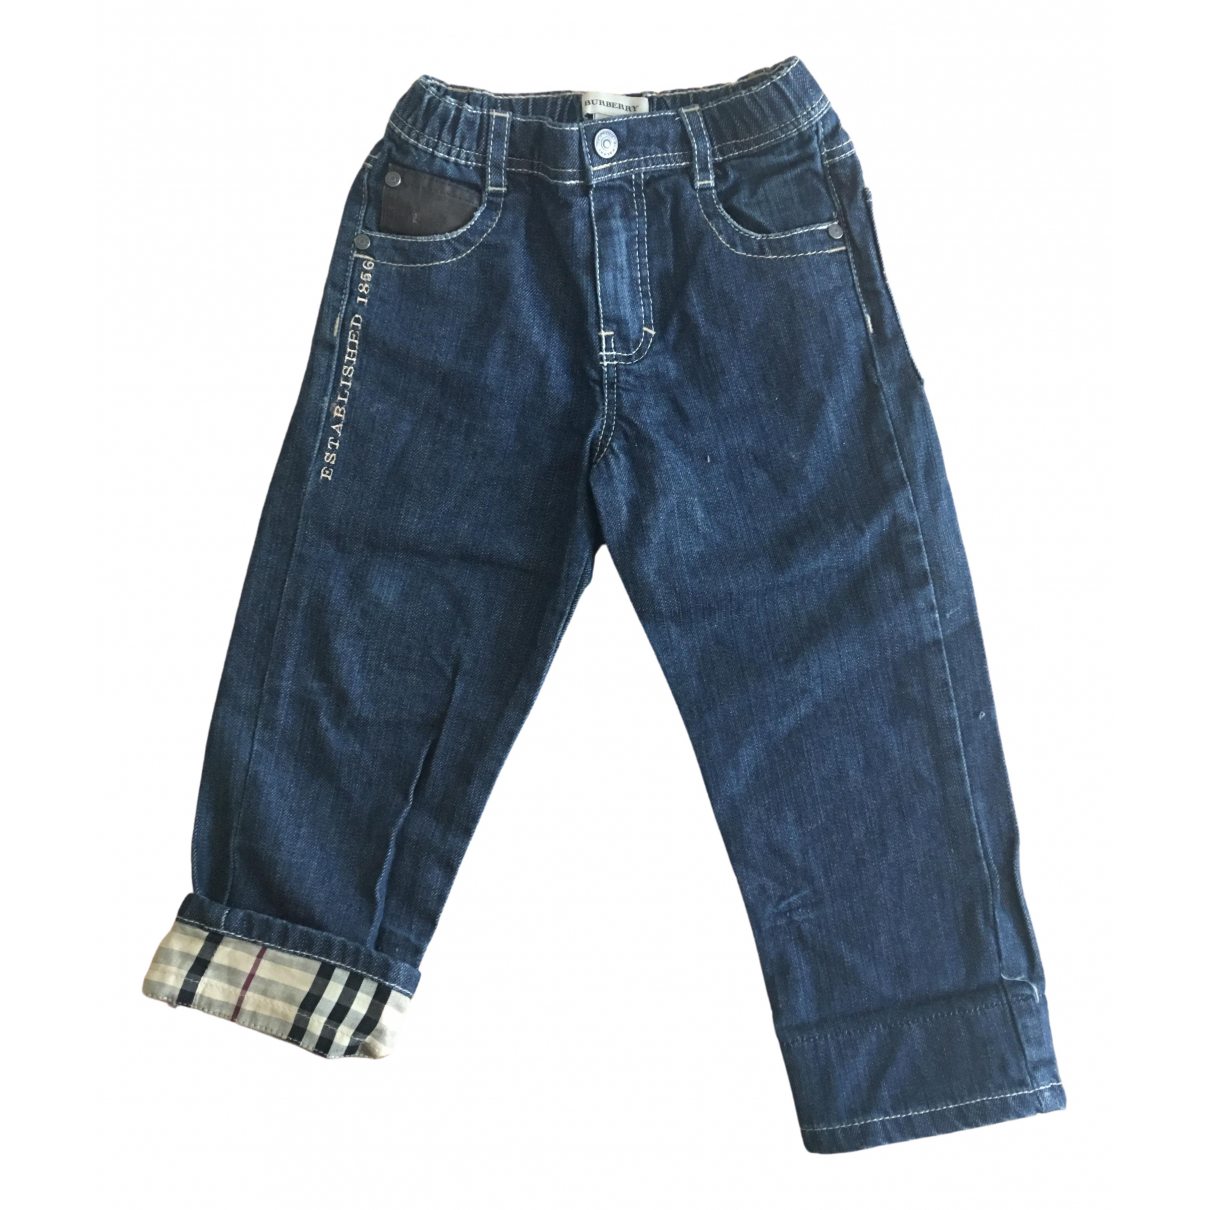 Burberry \N Navy Denim - Jeans Trousers for Kids 2 years - until 34 inches UK